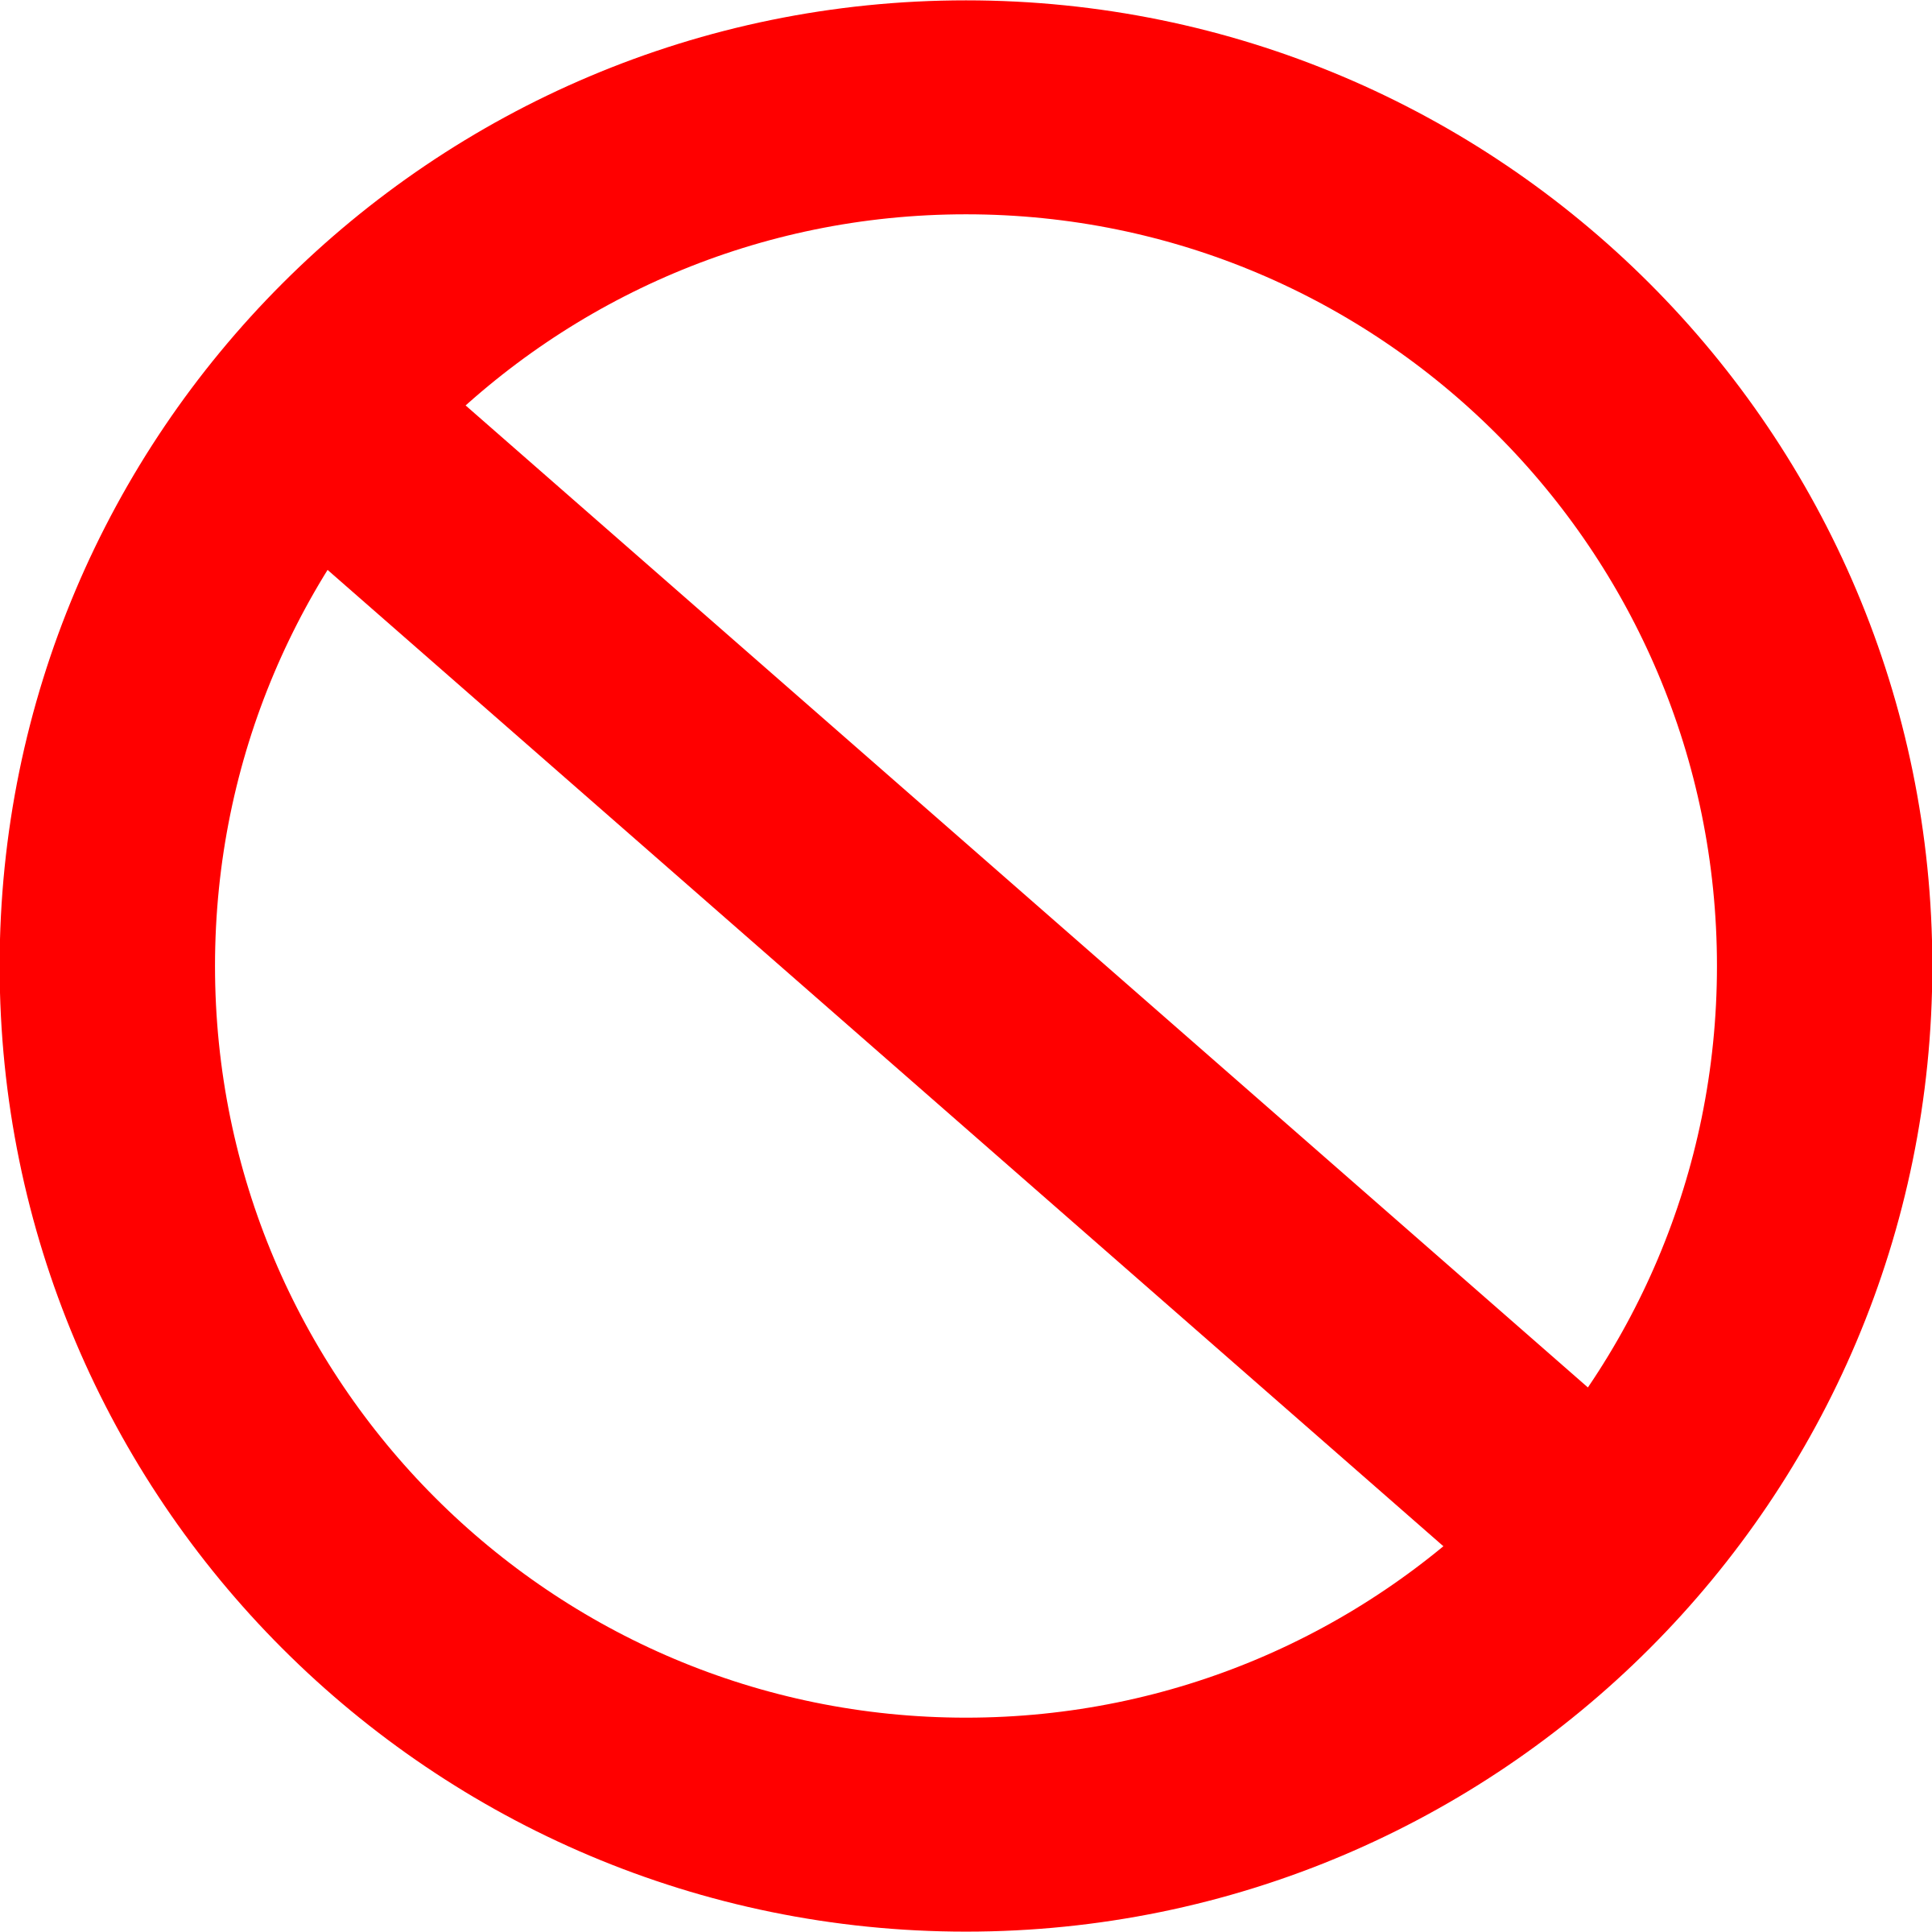 clipart panneau interdit forbidden road sign basic